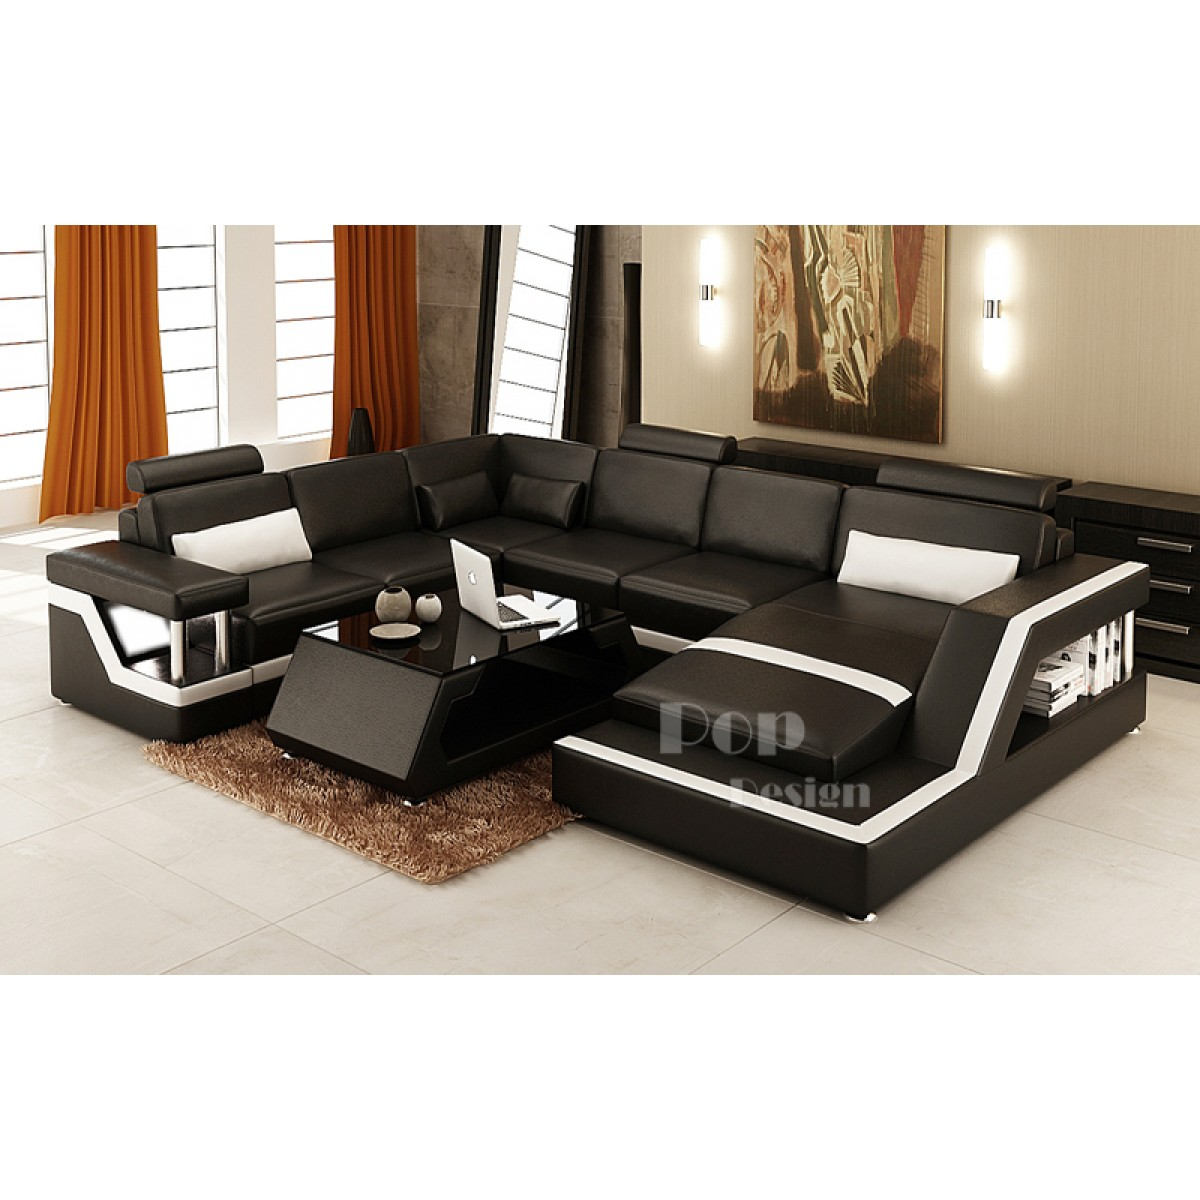 Canap d 39 angle panoramique design en cuir tosca xl clairages - Canape panoramique design ...